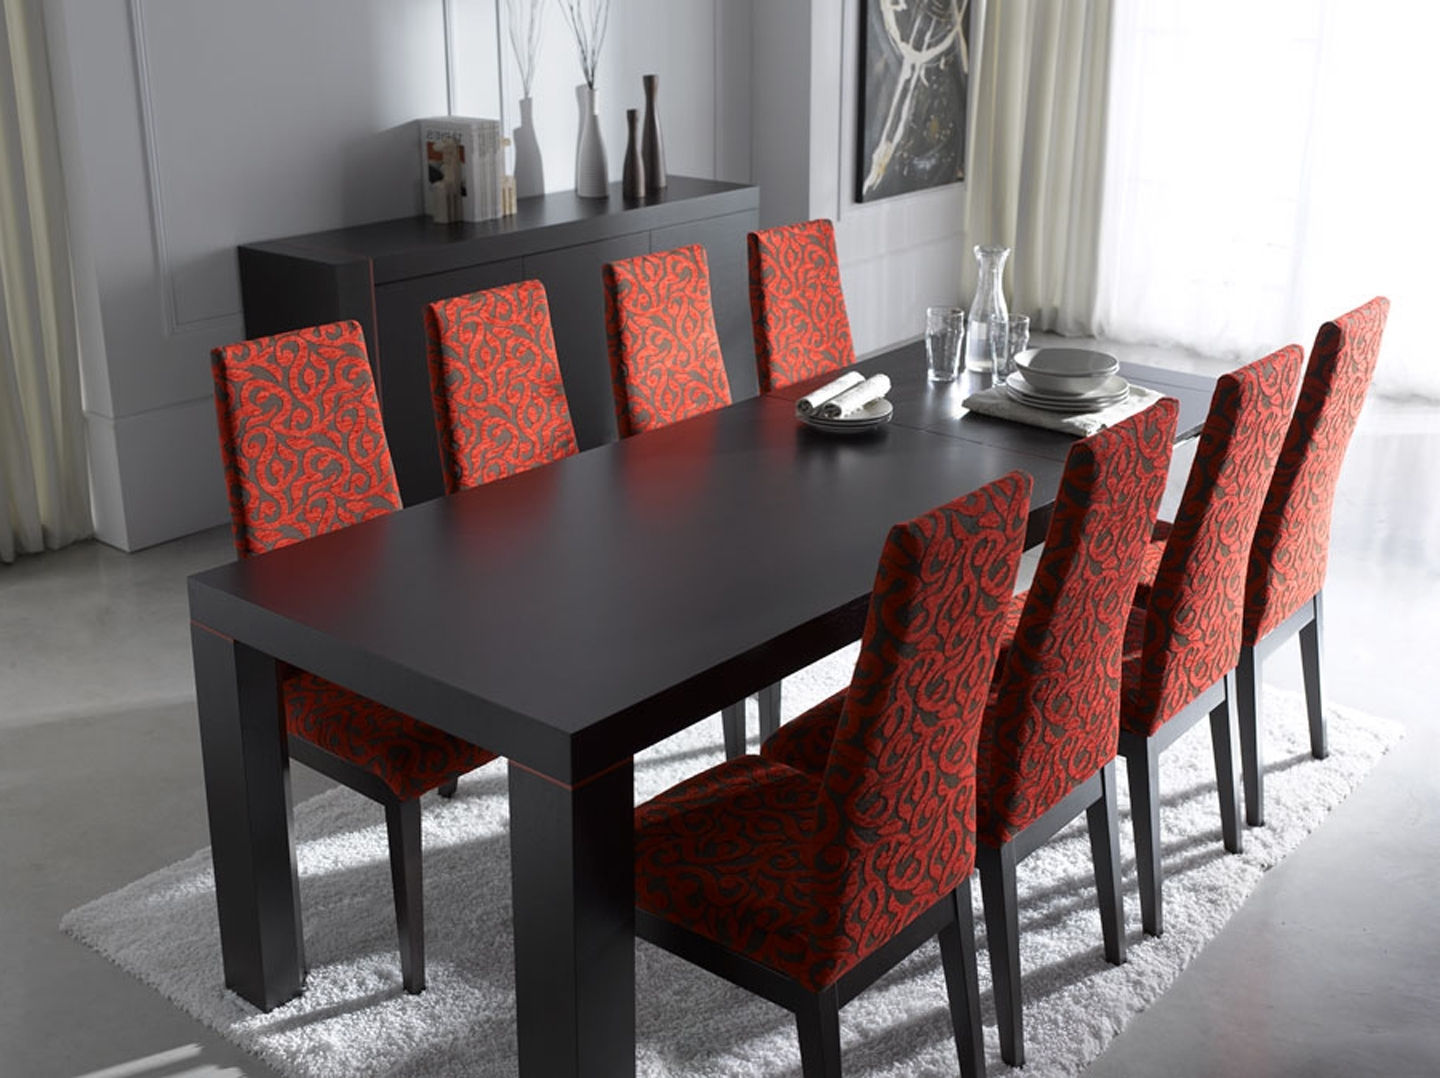 Newest Contemporary Dining Room Tables And Chairs Inside Dining Room : Modern Dining Tables Northern Ireland Room Sets (View 11 of 25)